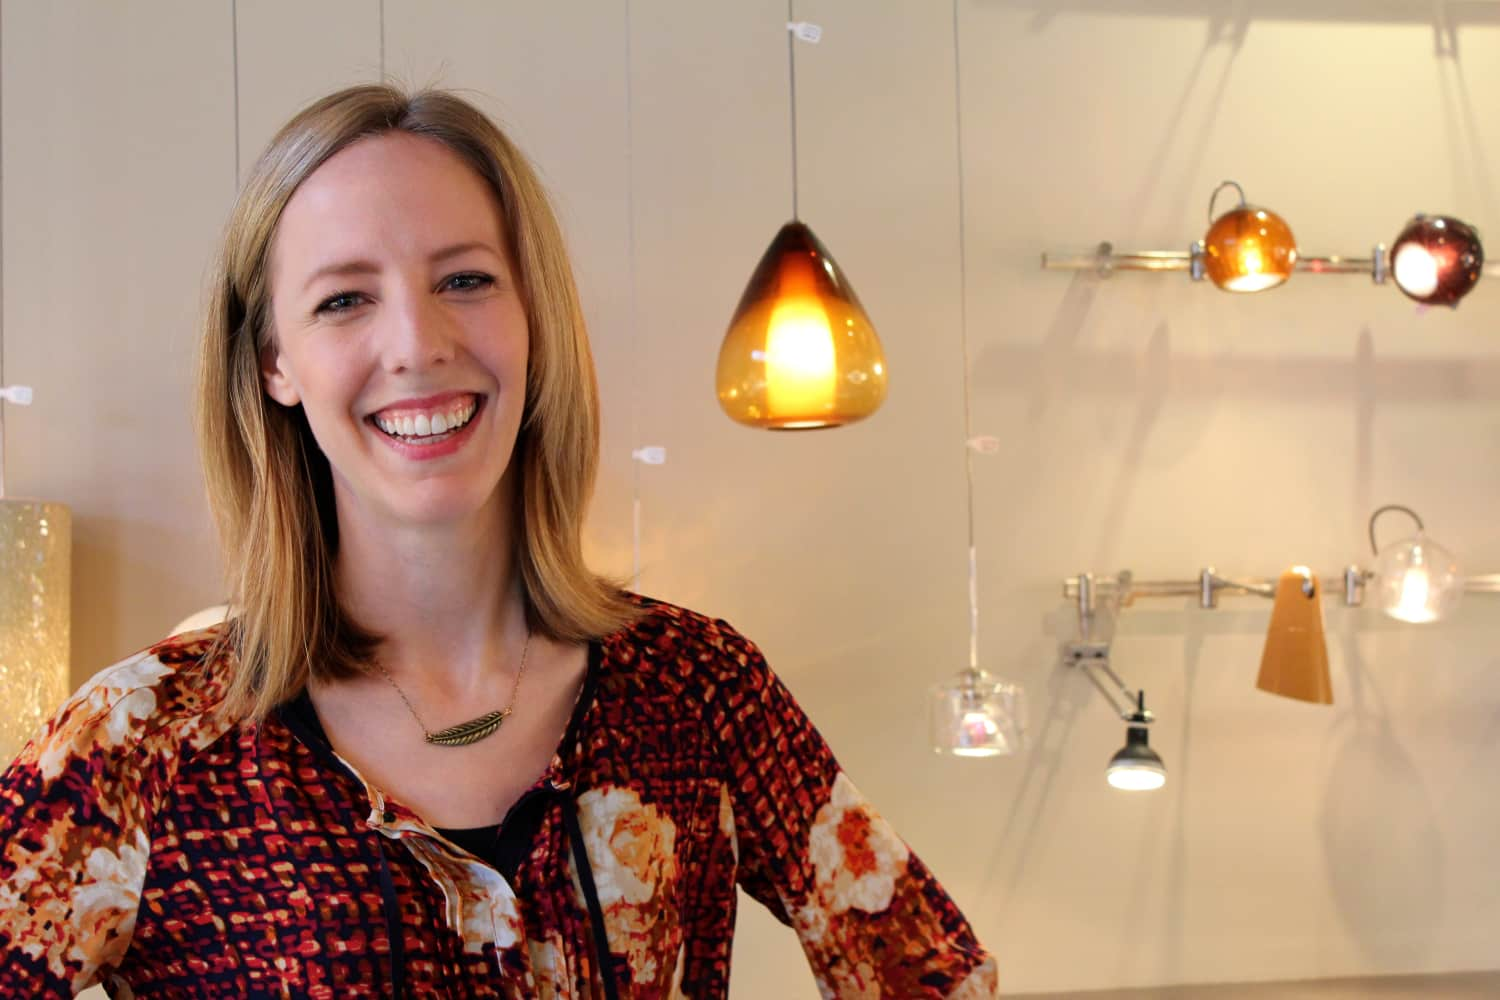 Expert Advice: Professional Tips for Lighting Your Home